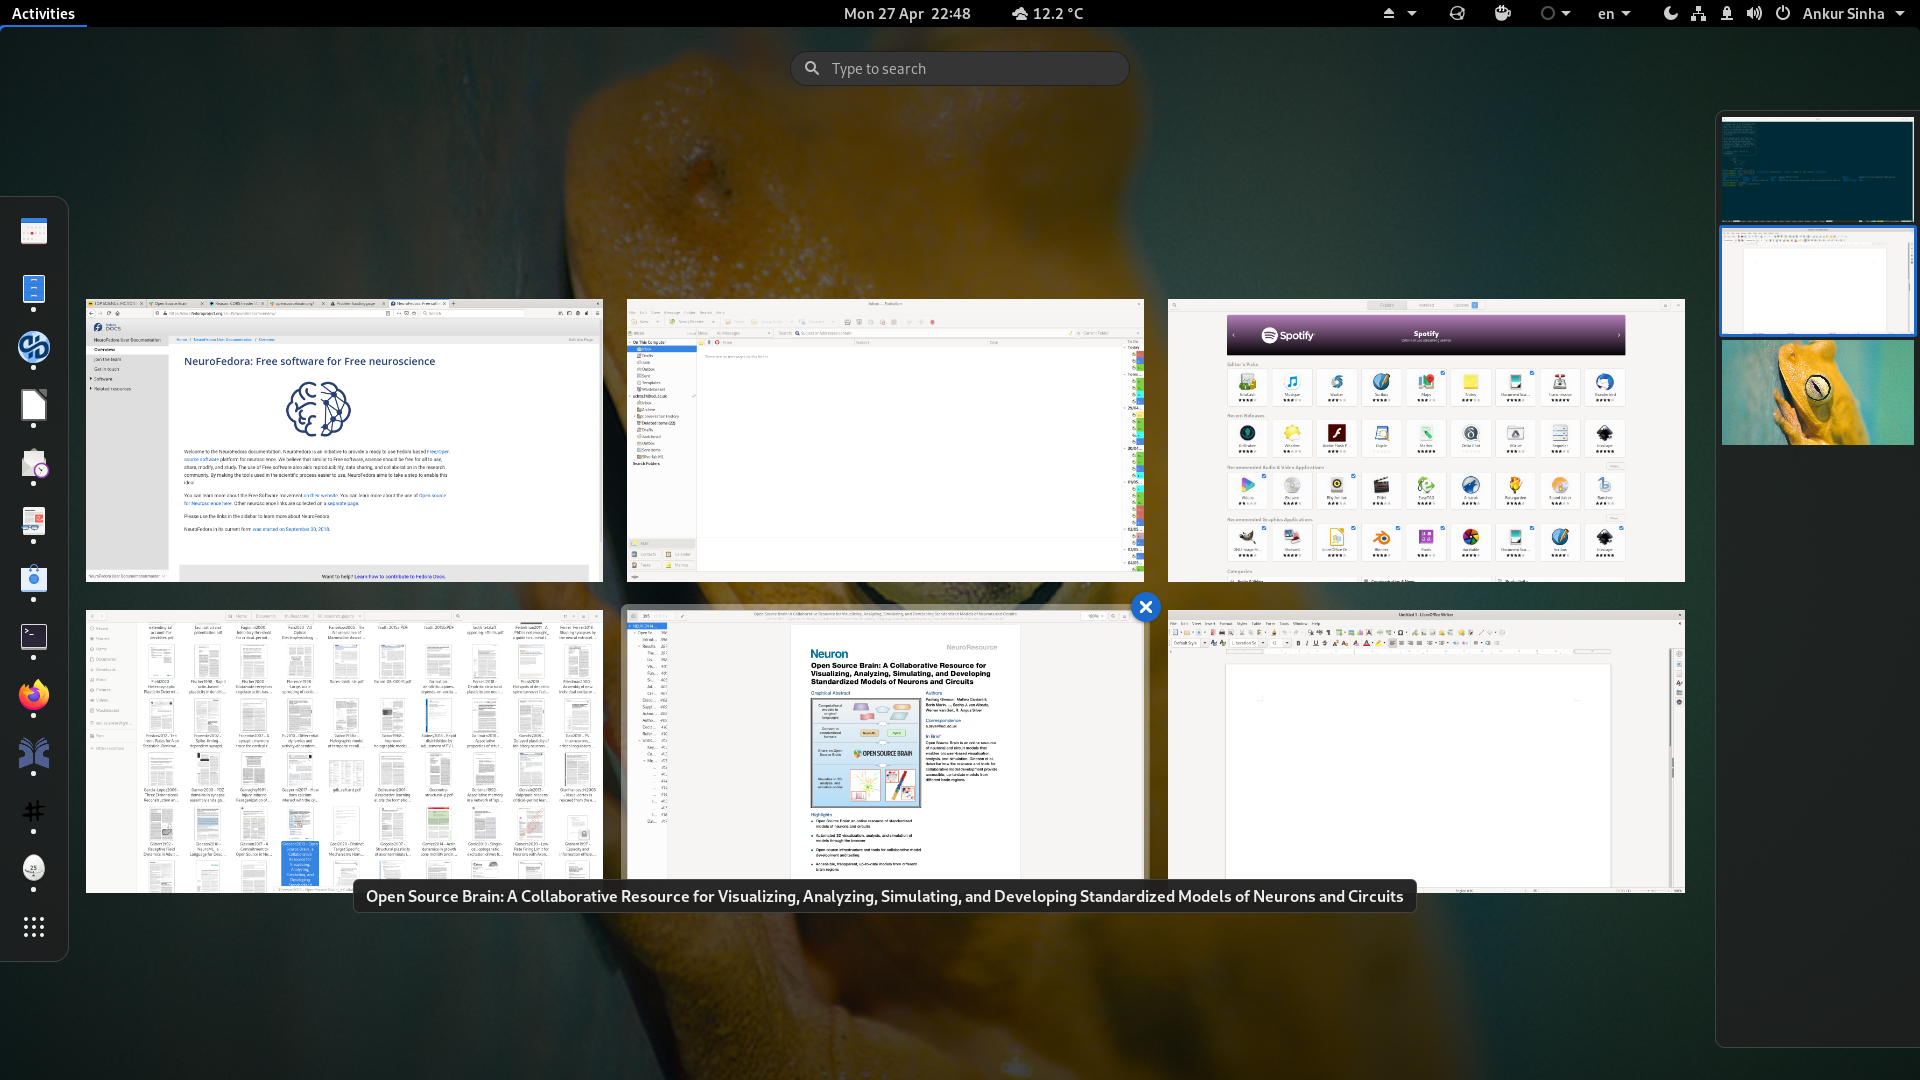 Screenshot of the GNOME desktop environment with applications.